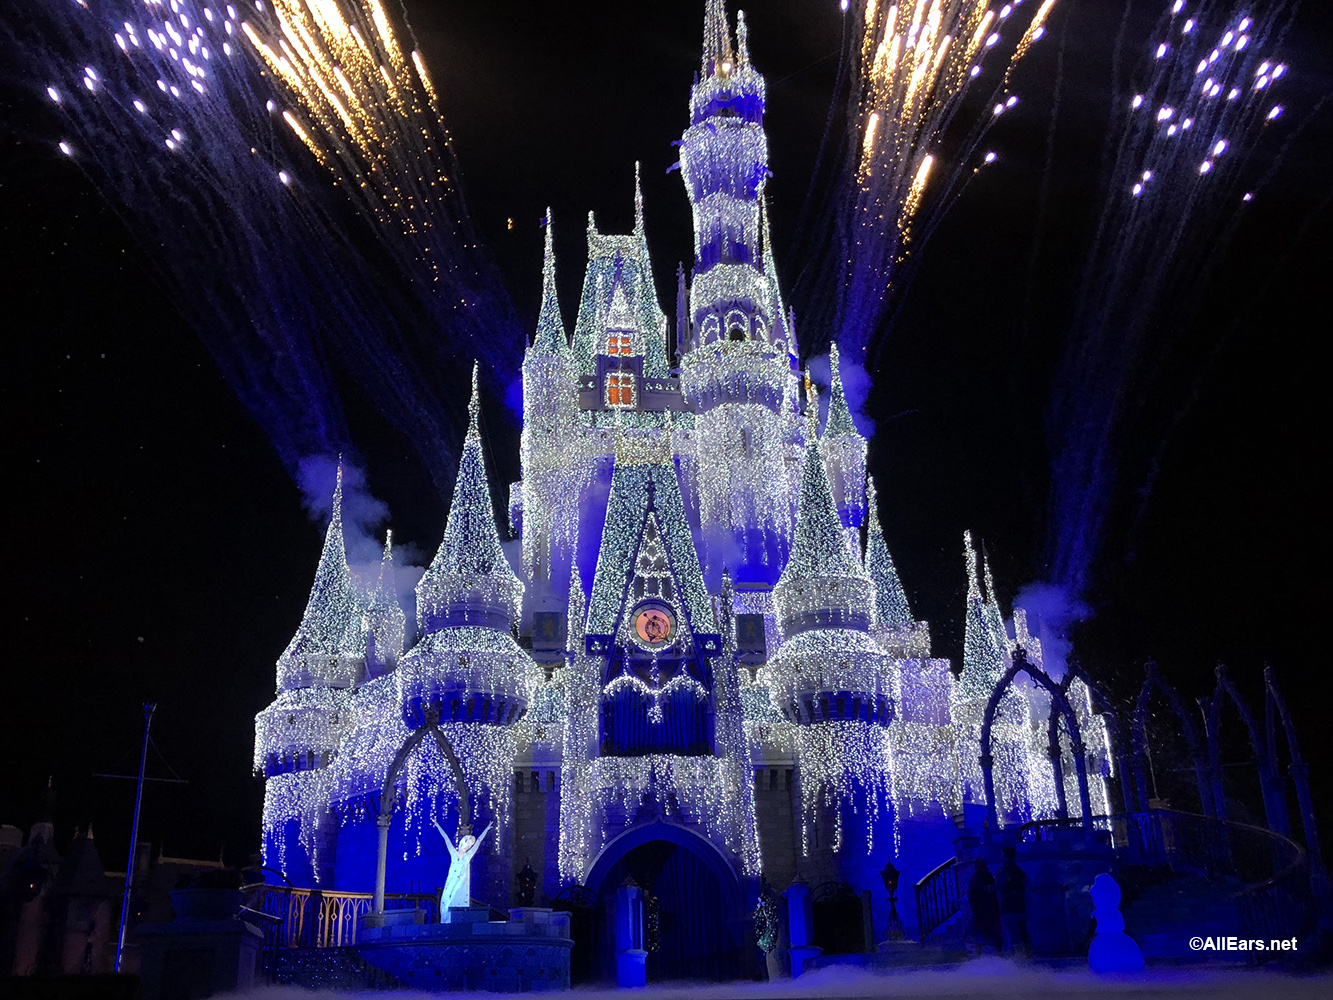 Disney World Resort Christmas Packages 2020 Spend the Holidays in Disney World with the New Ultimate Disney